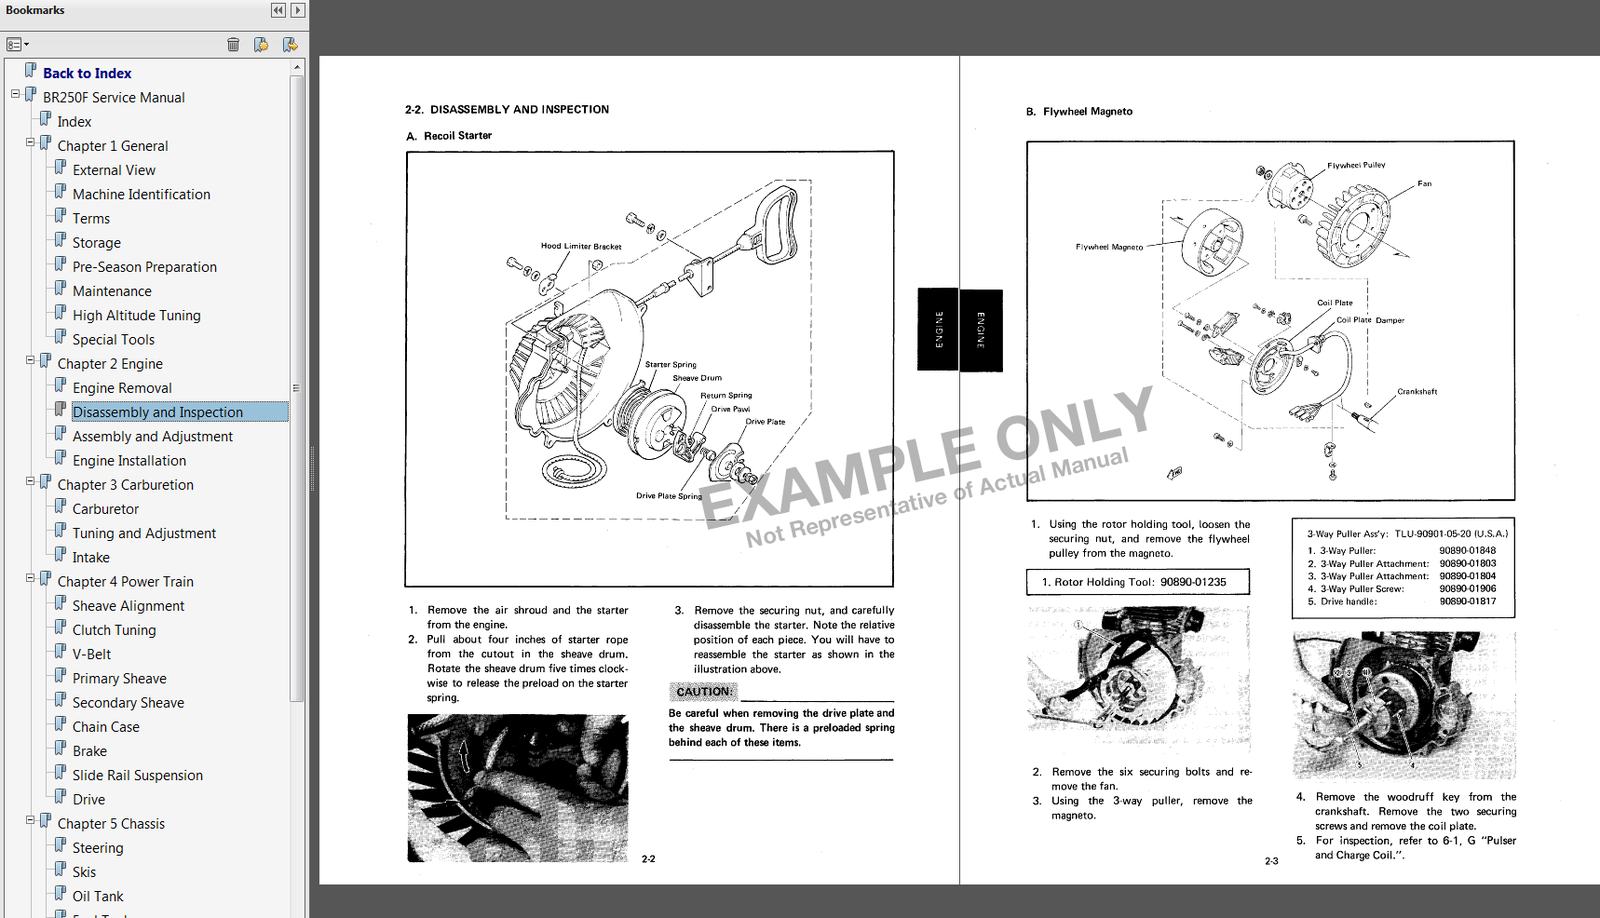 samplewm 1994 1996 yamaha vmax 500 600 snowmobile and 50 similar items Yamaha Wiring Schematic at gsmx.co